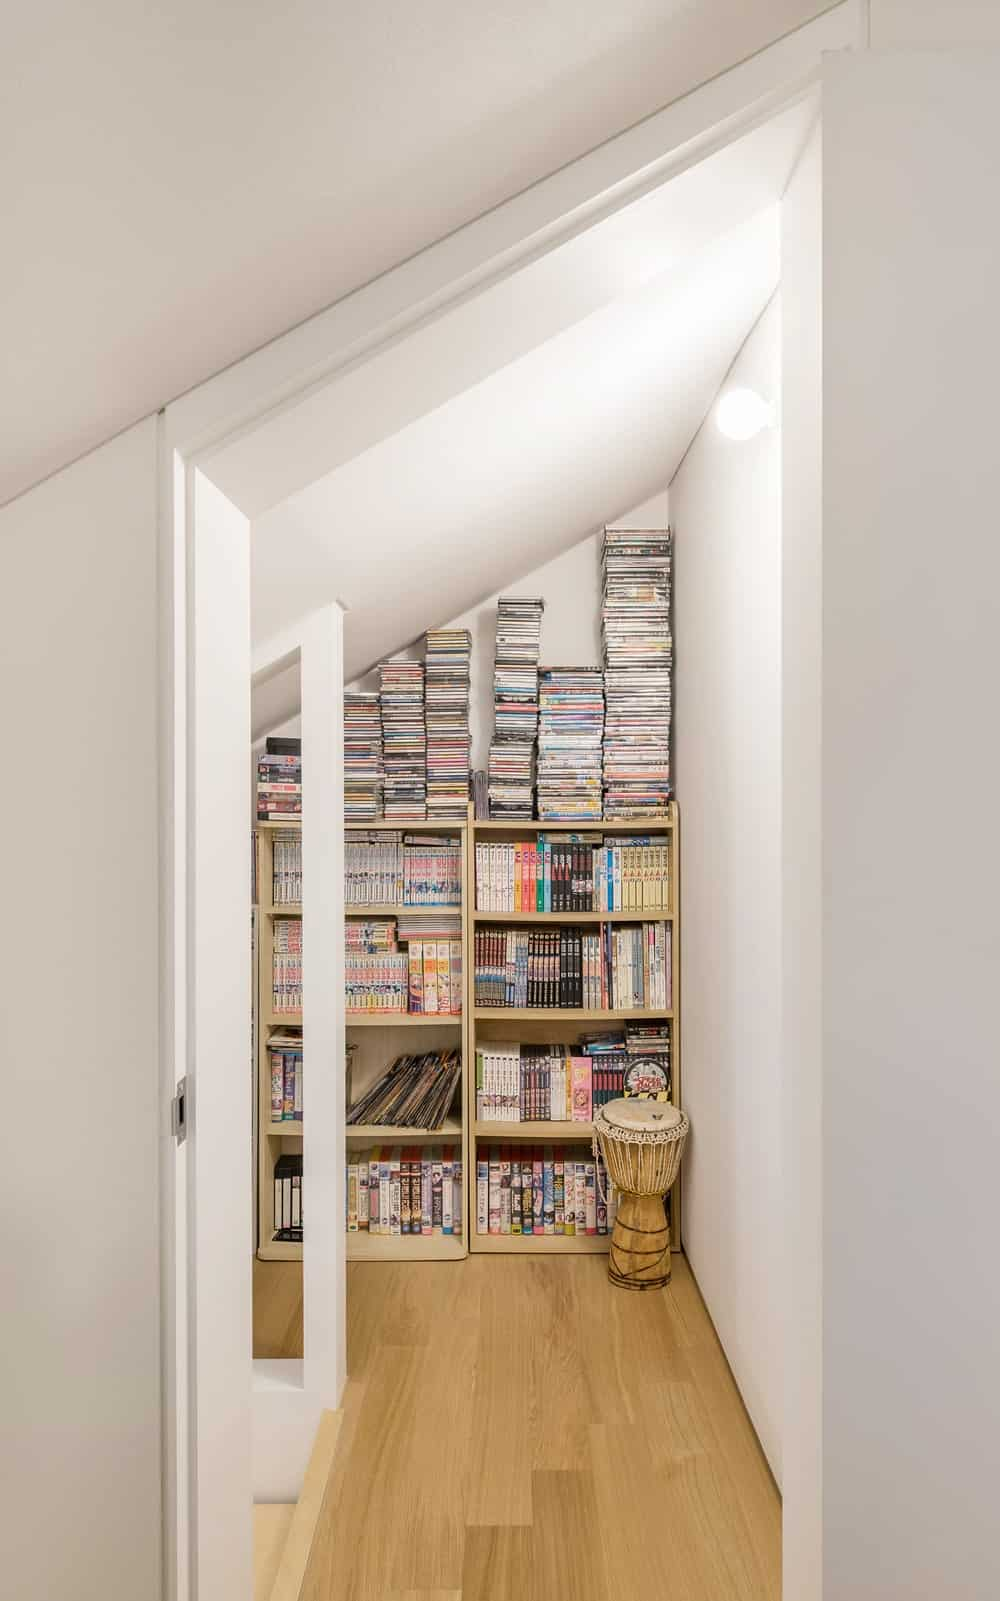 This is a view of the attic shoecasing the built-in bookshelves that makes the most out of the vertical space of the area.